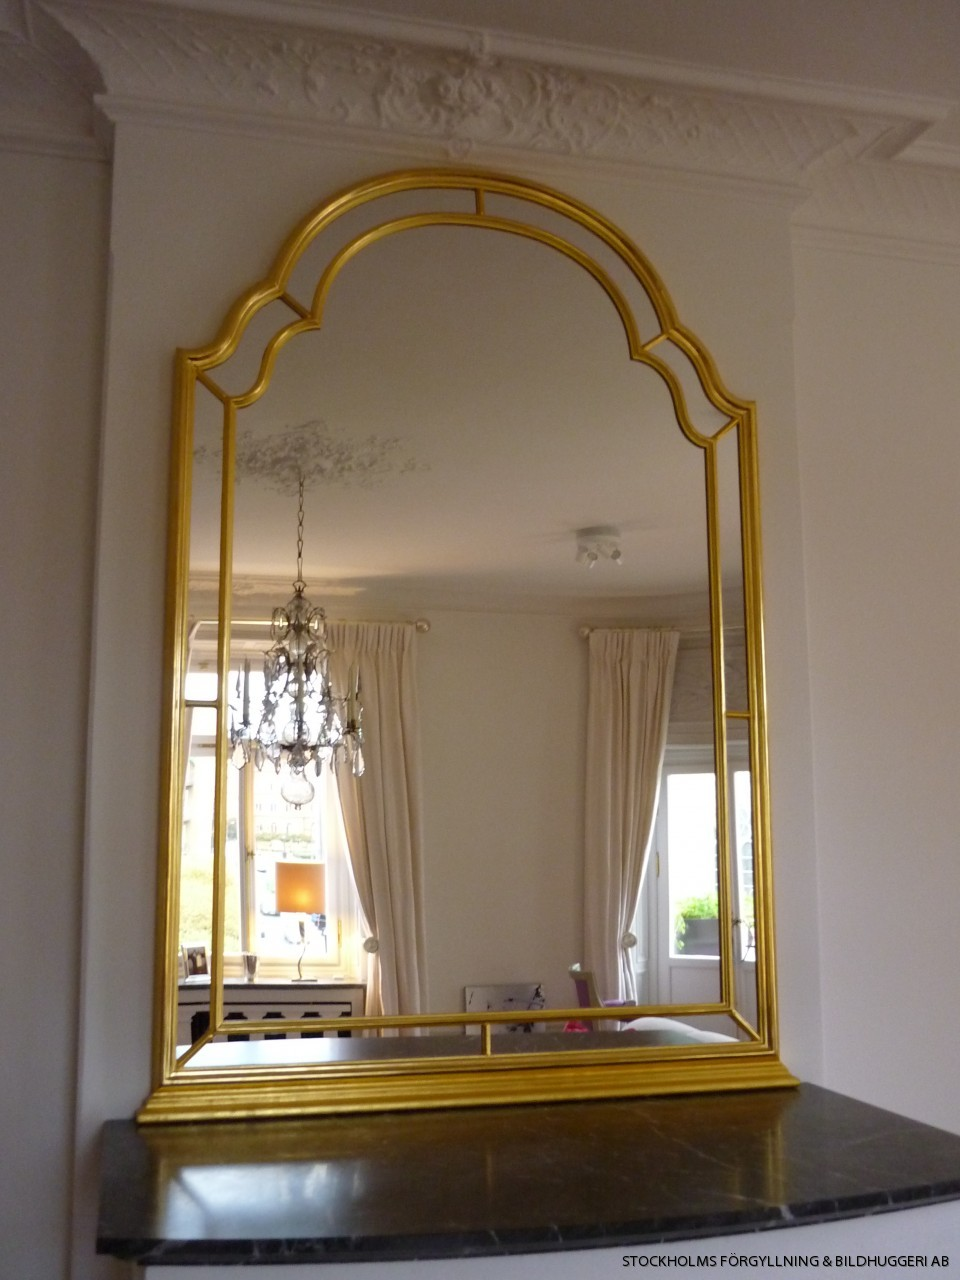 Mirrors  custom made, hand made gilded or wooden mirrors